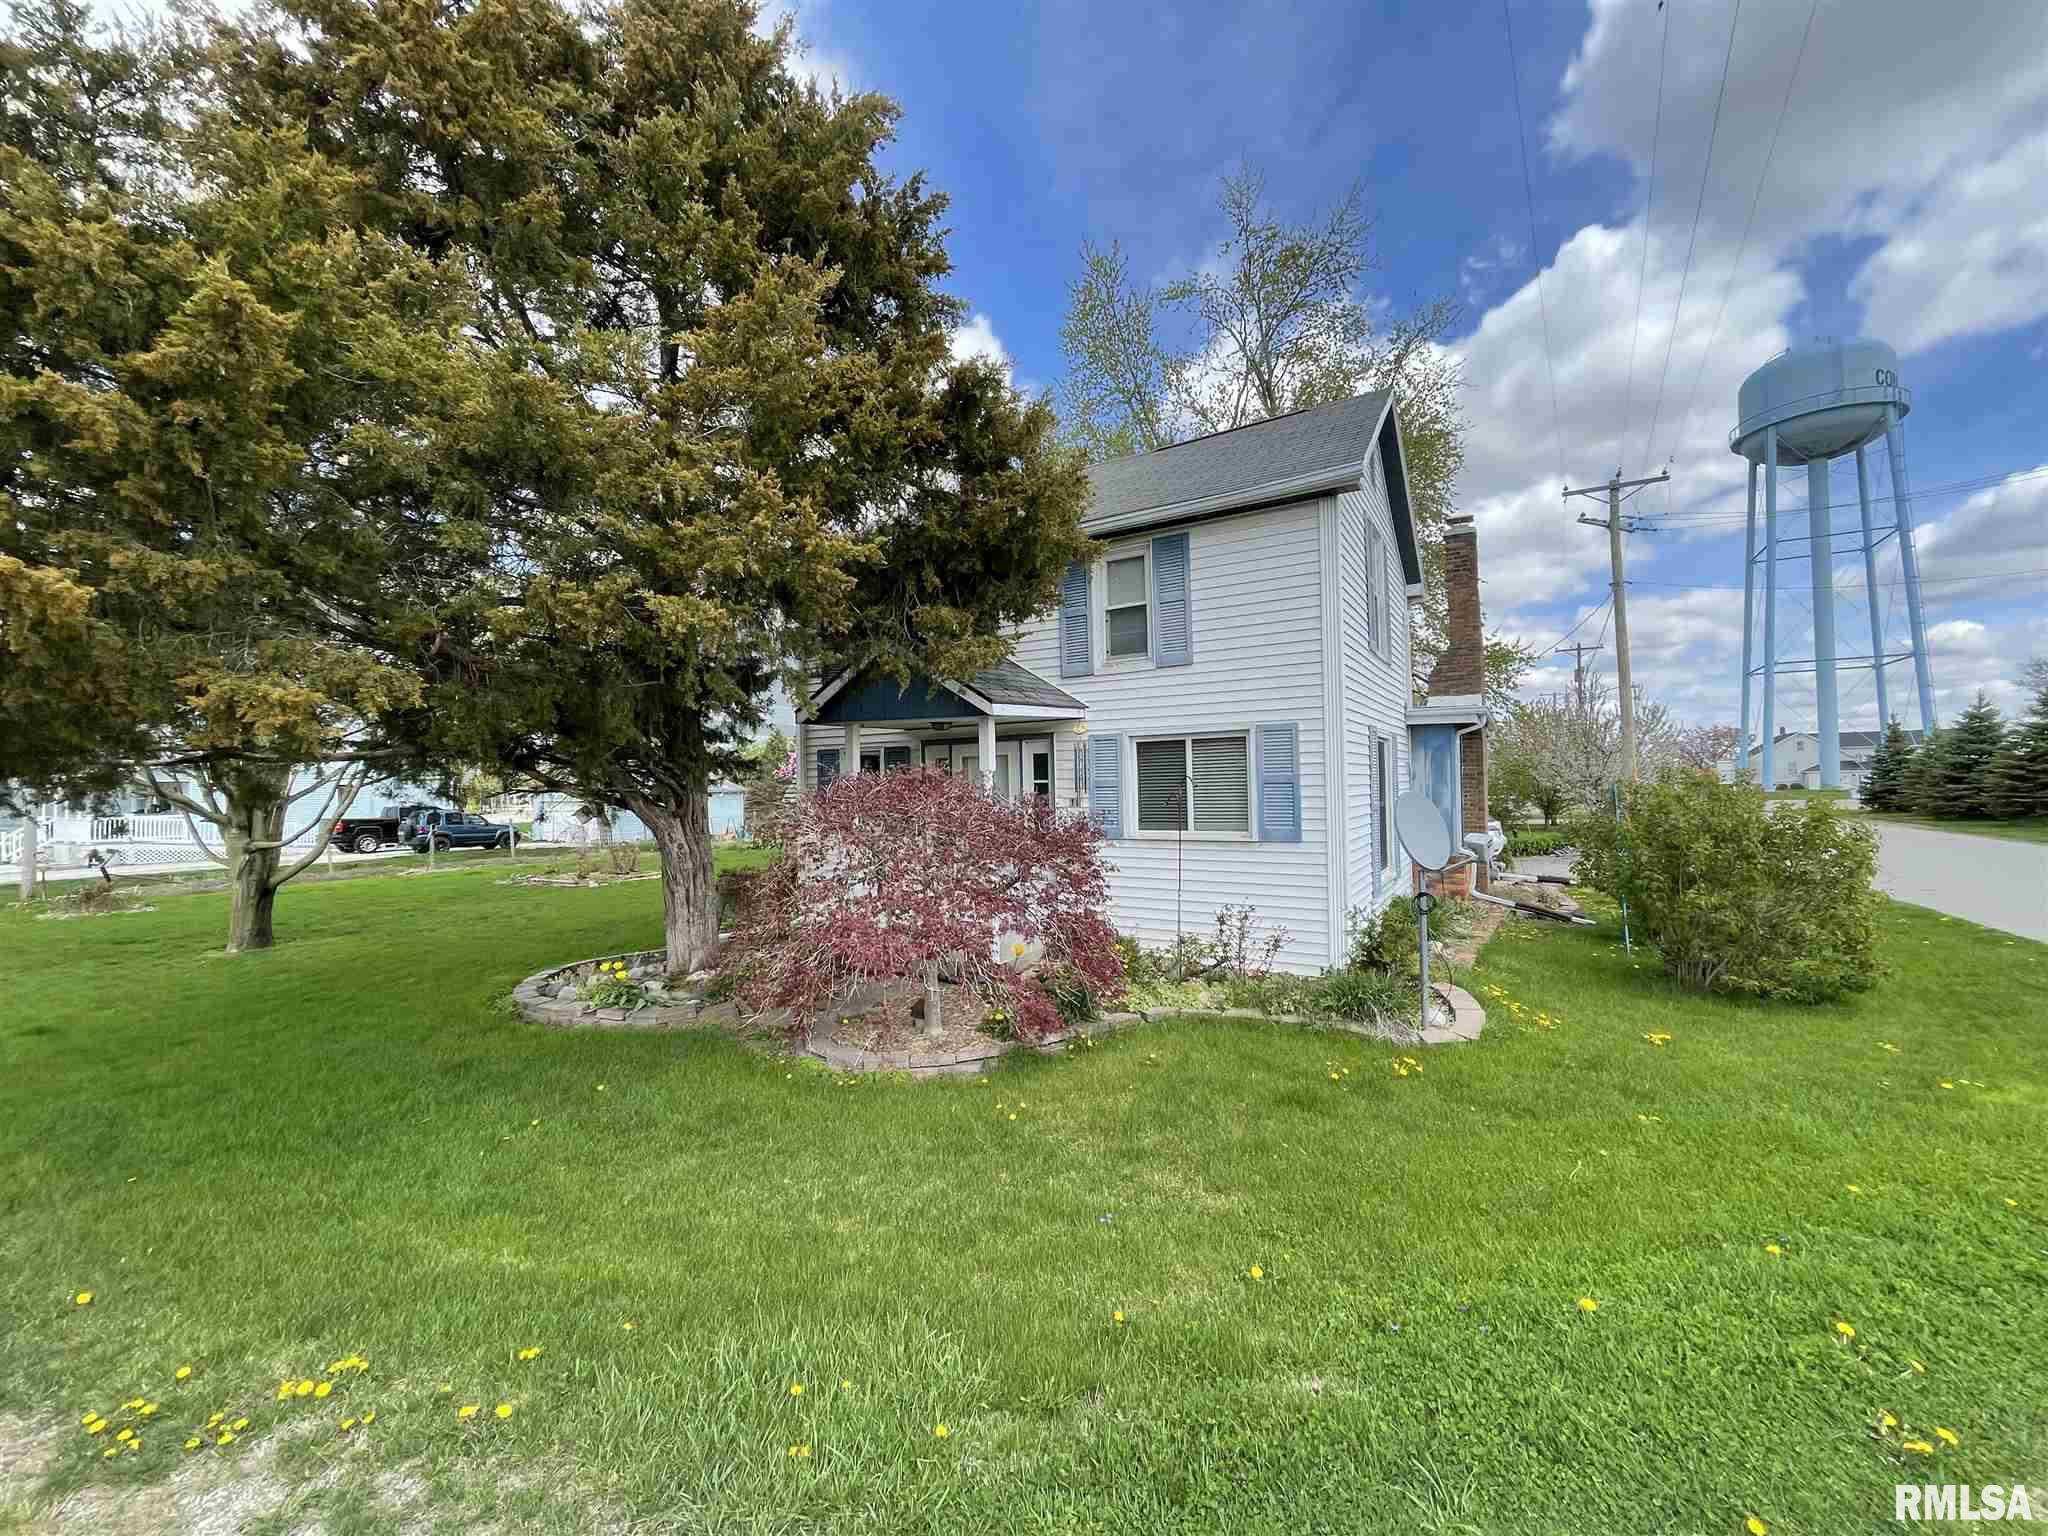 218 S PERRY Property Photo - Congerville, IL real estate listing